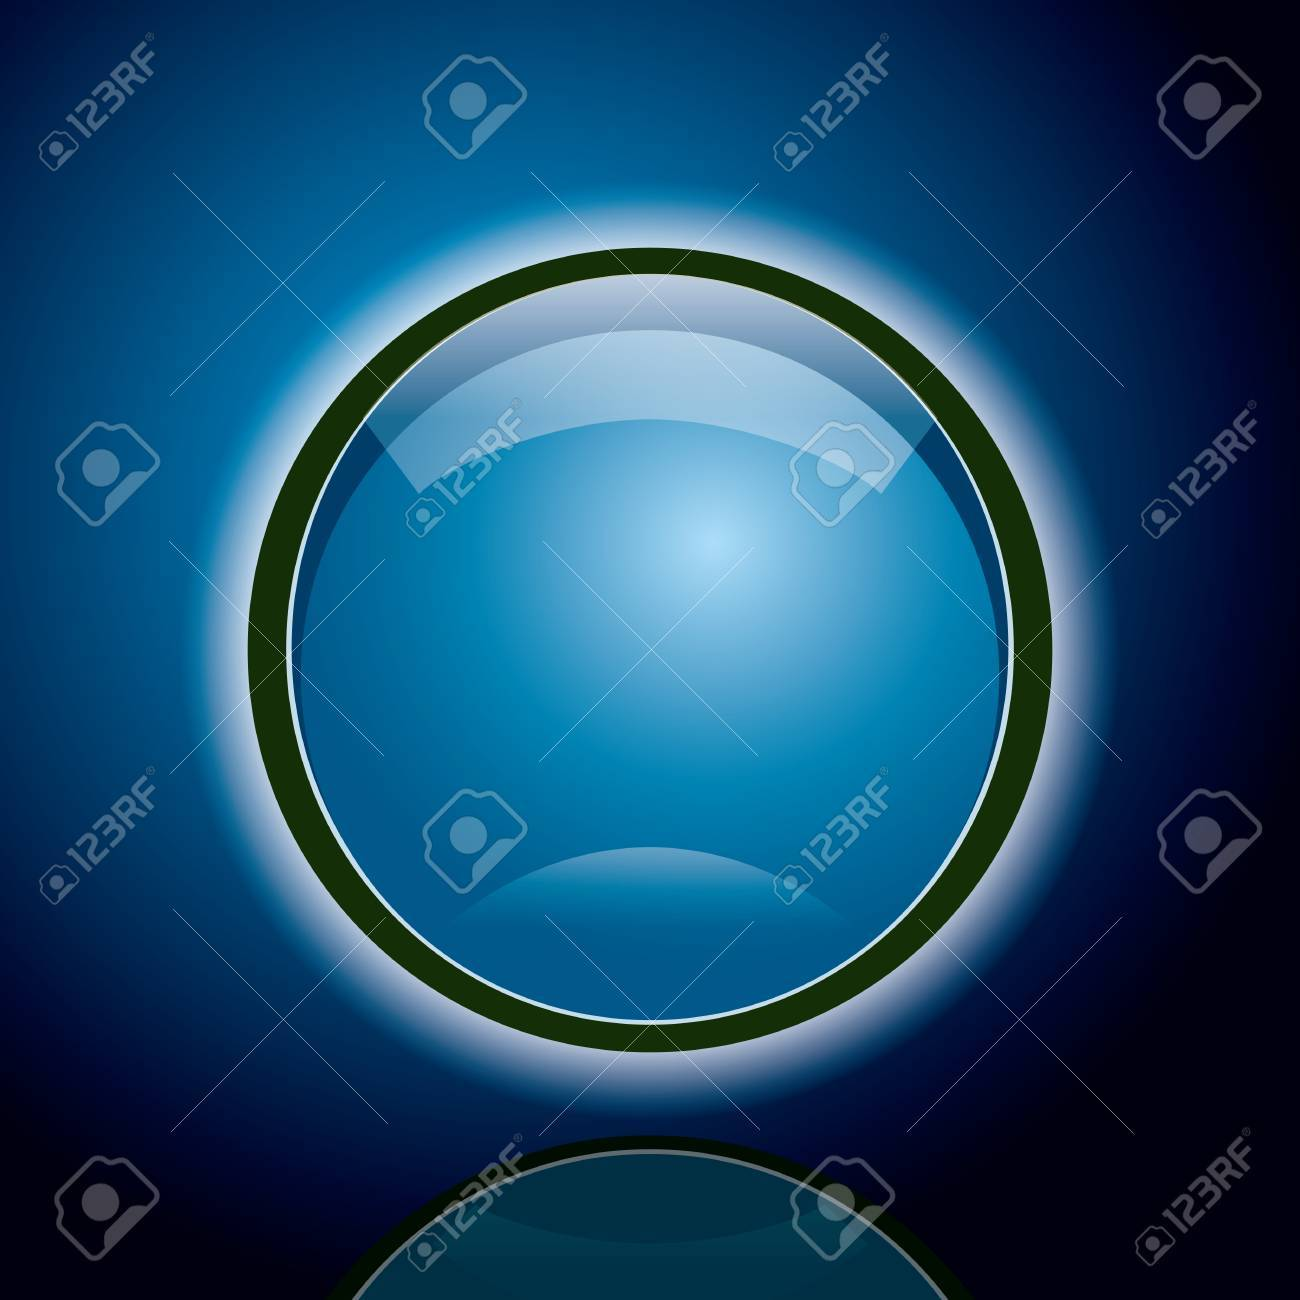 Abstract Blue Circle Background Stock Vector - 7611534